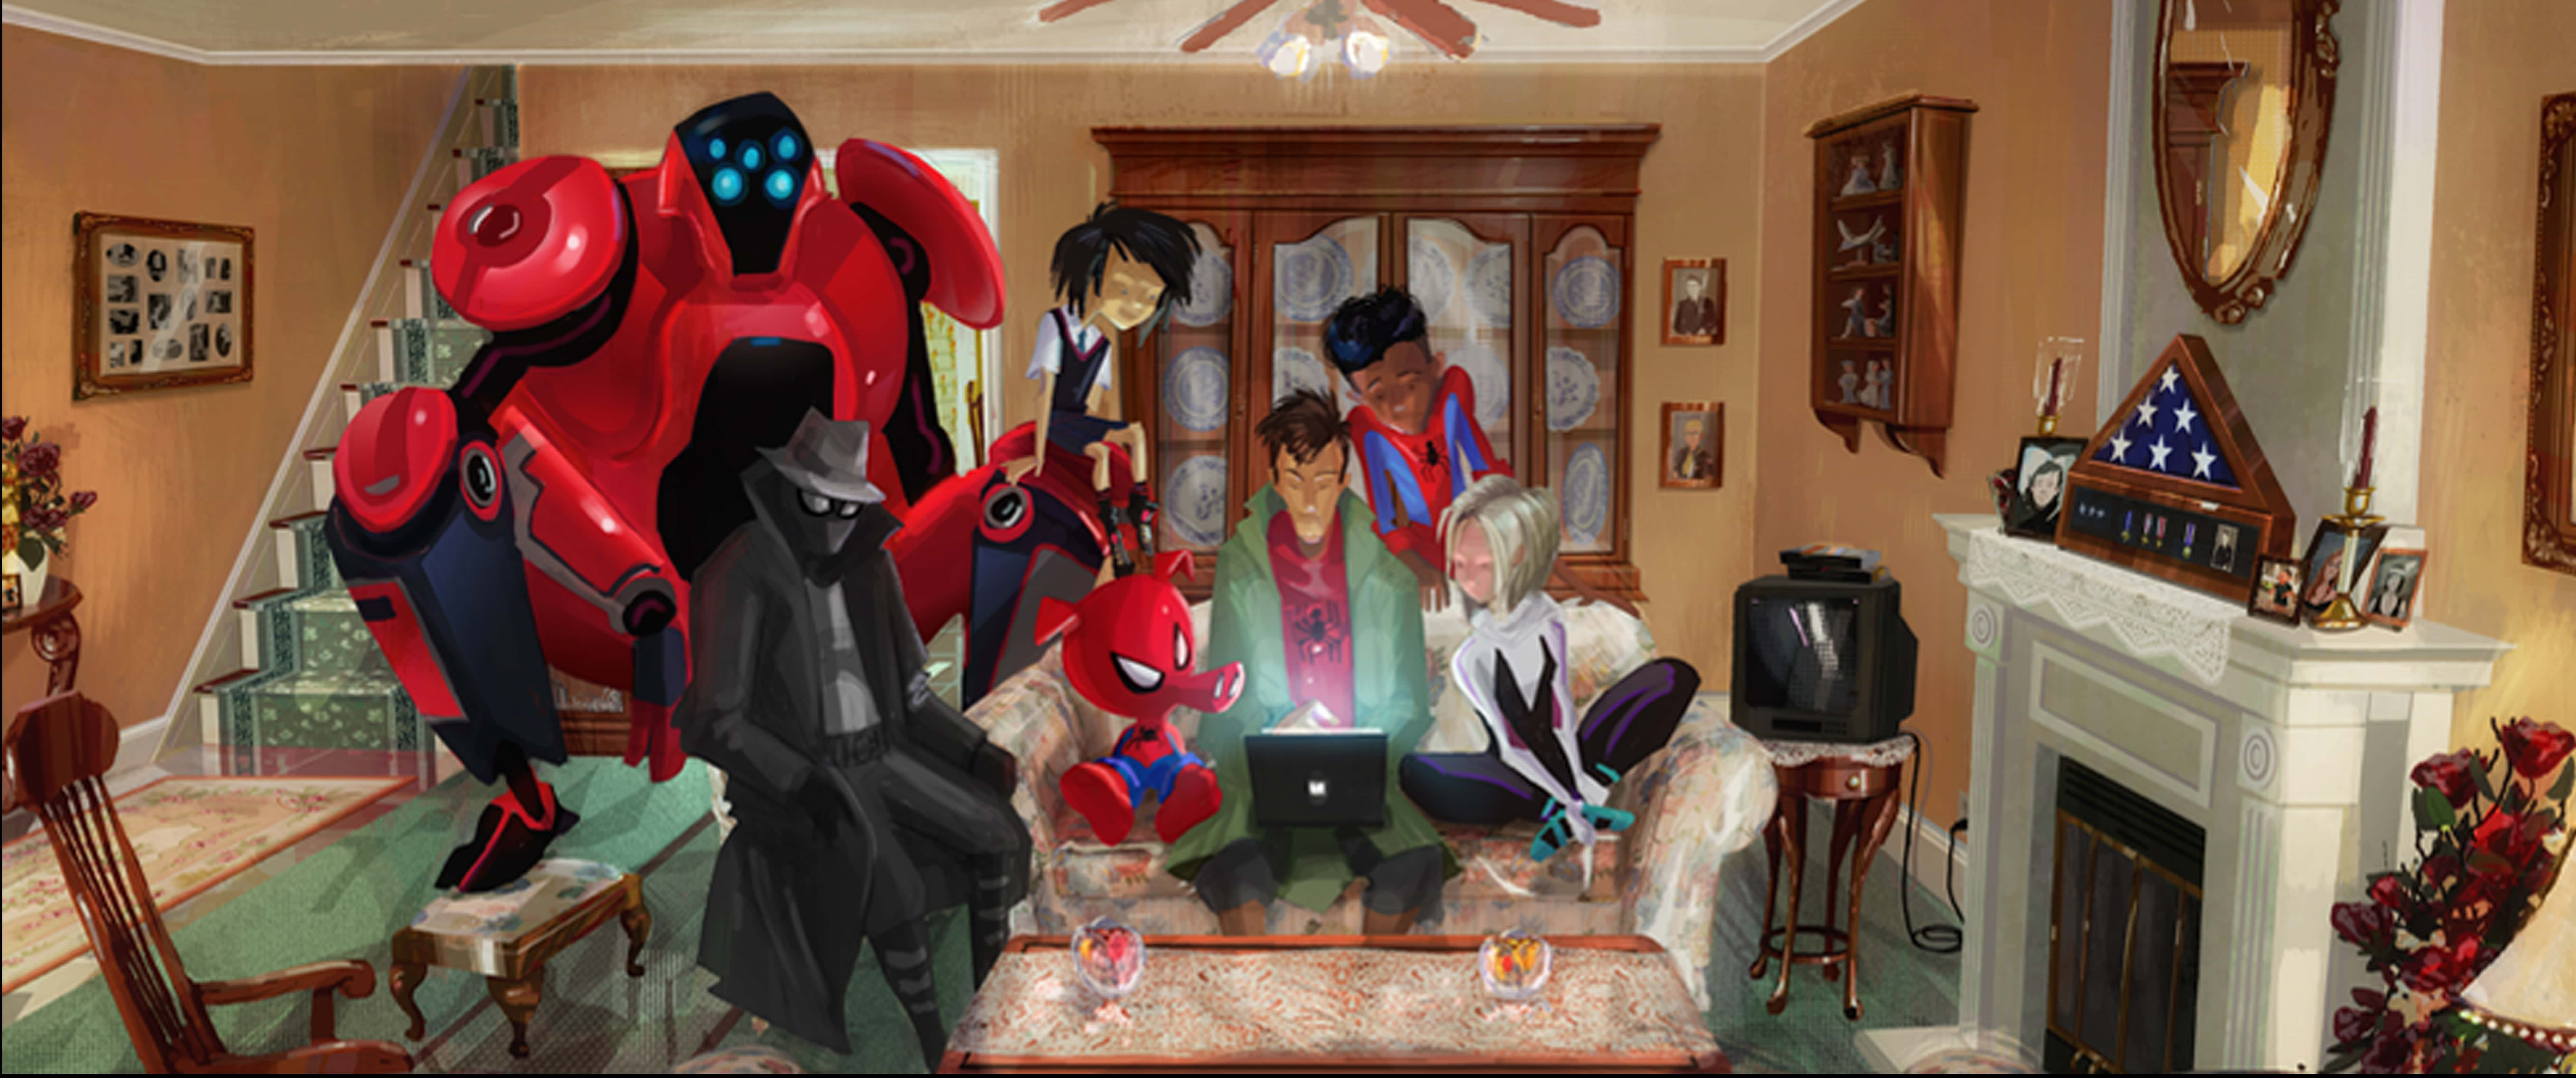 Spider-Man Into The Spider-Verse Giveaway, Spider-Man Into The Spider-Verse Concept Art